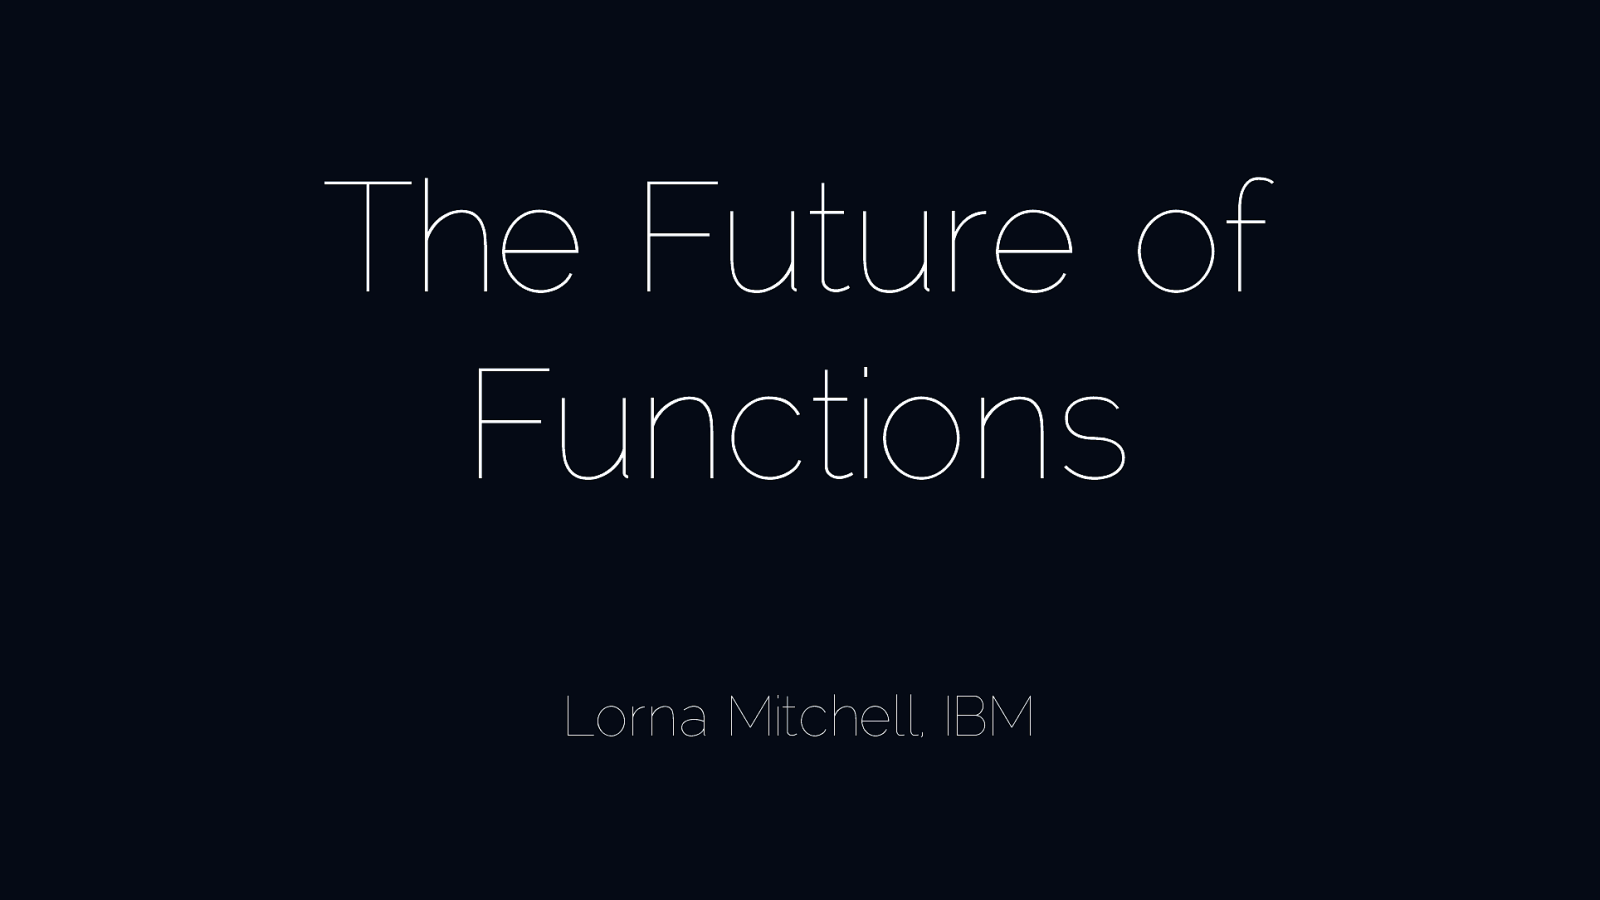 The Future of Functions